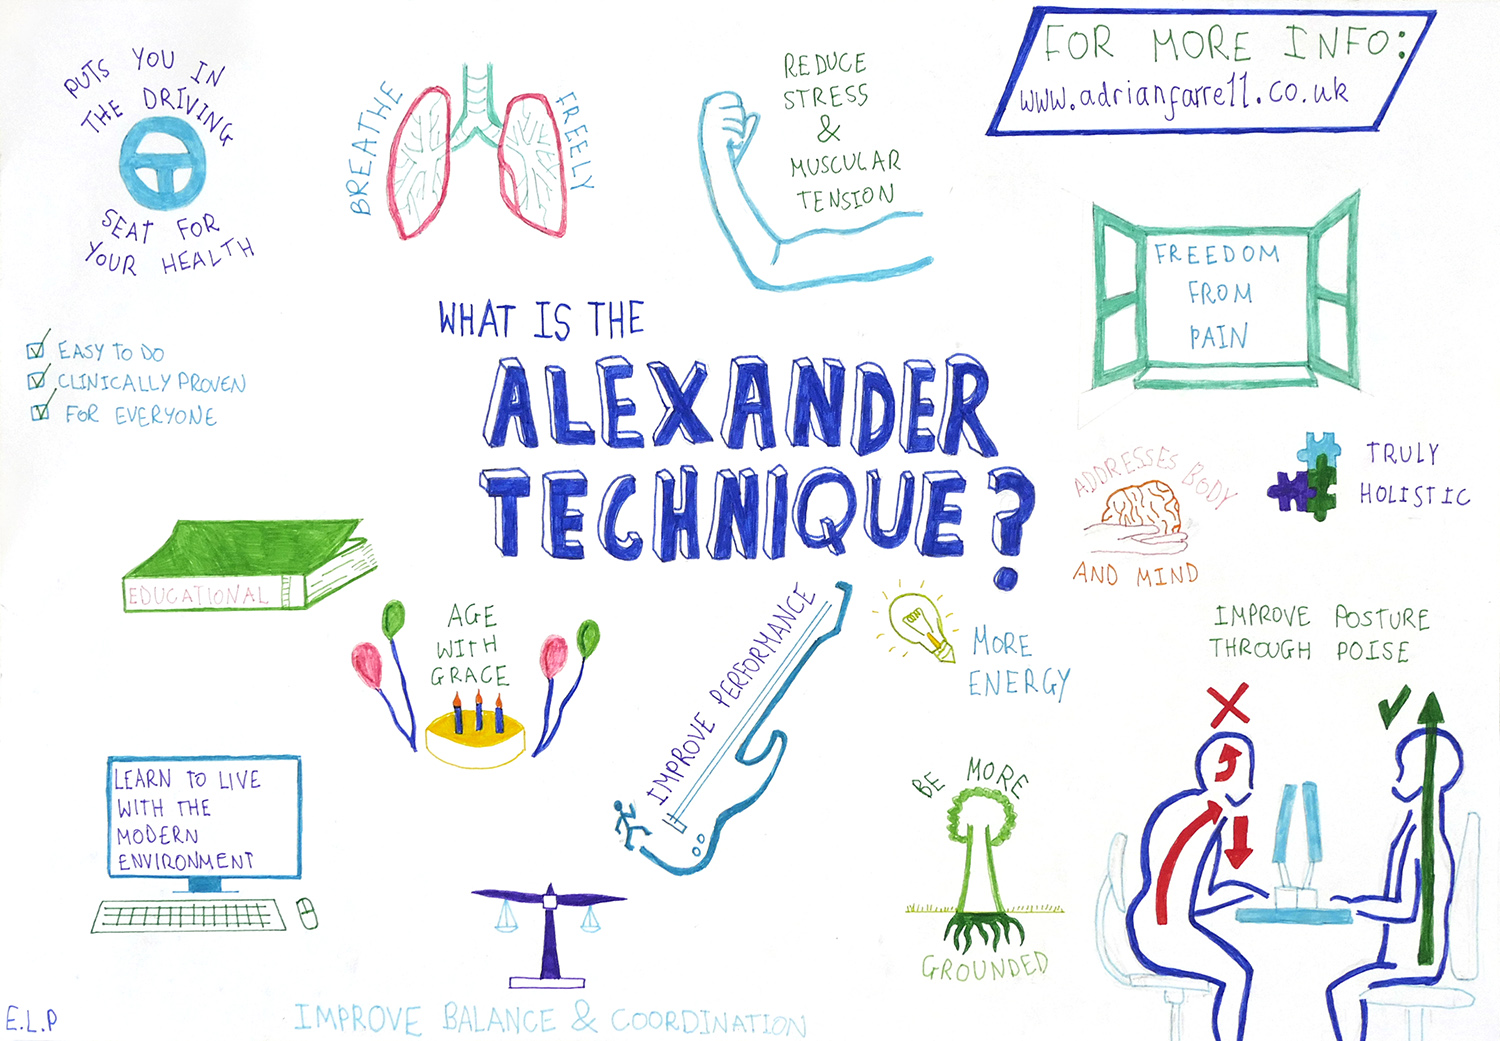 What is the Alexander Technique